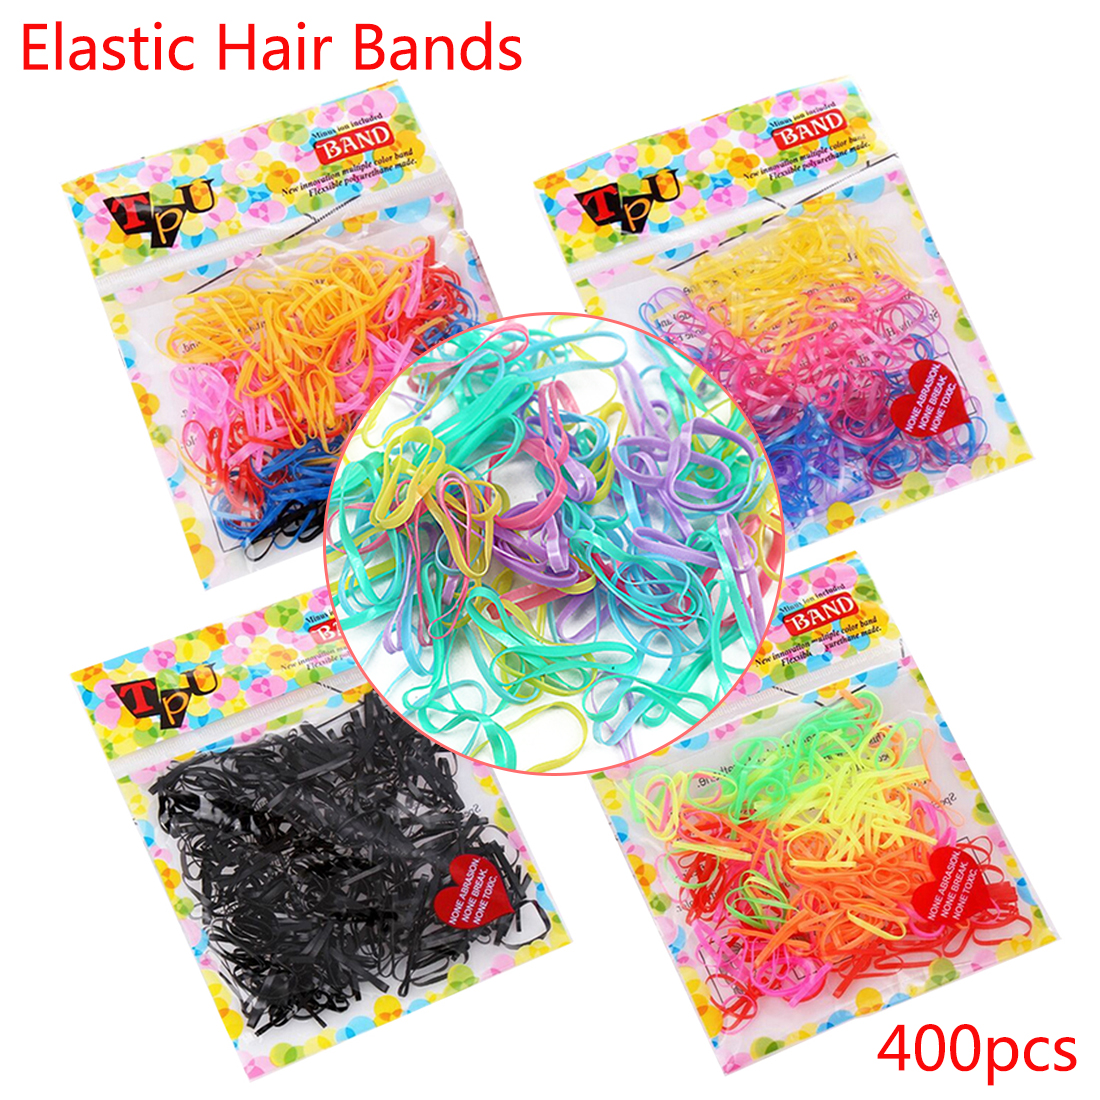 400pcs/lot Korean Style Headwear Elastic Rubber Band One-Off Braiding Hair Rings Tie Gum Scrunchy for Girls Hair Accessories metting joura vintage bohemian ethnic tribal flower print stone handmade elastic headband hair band design hair accessories